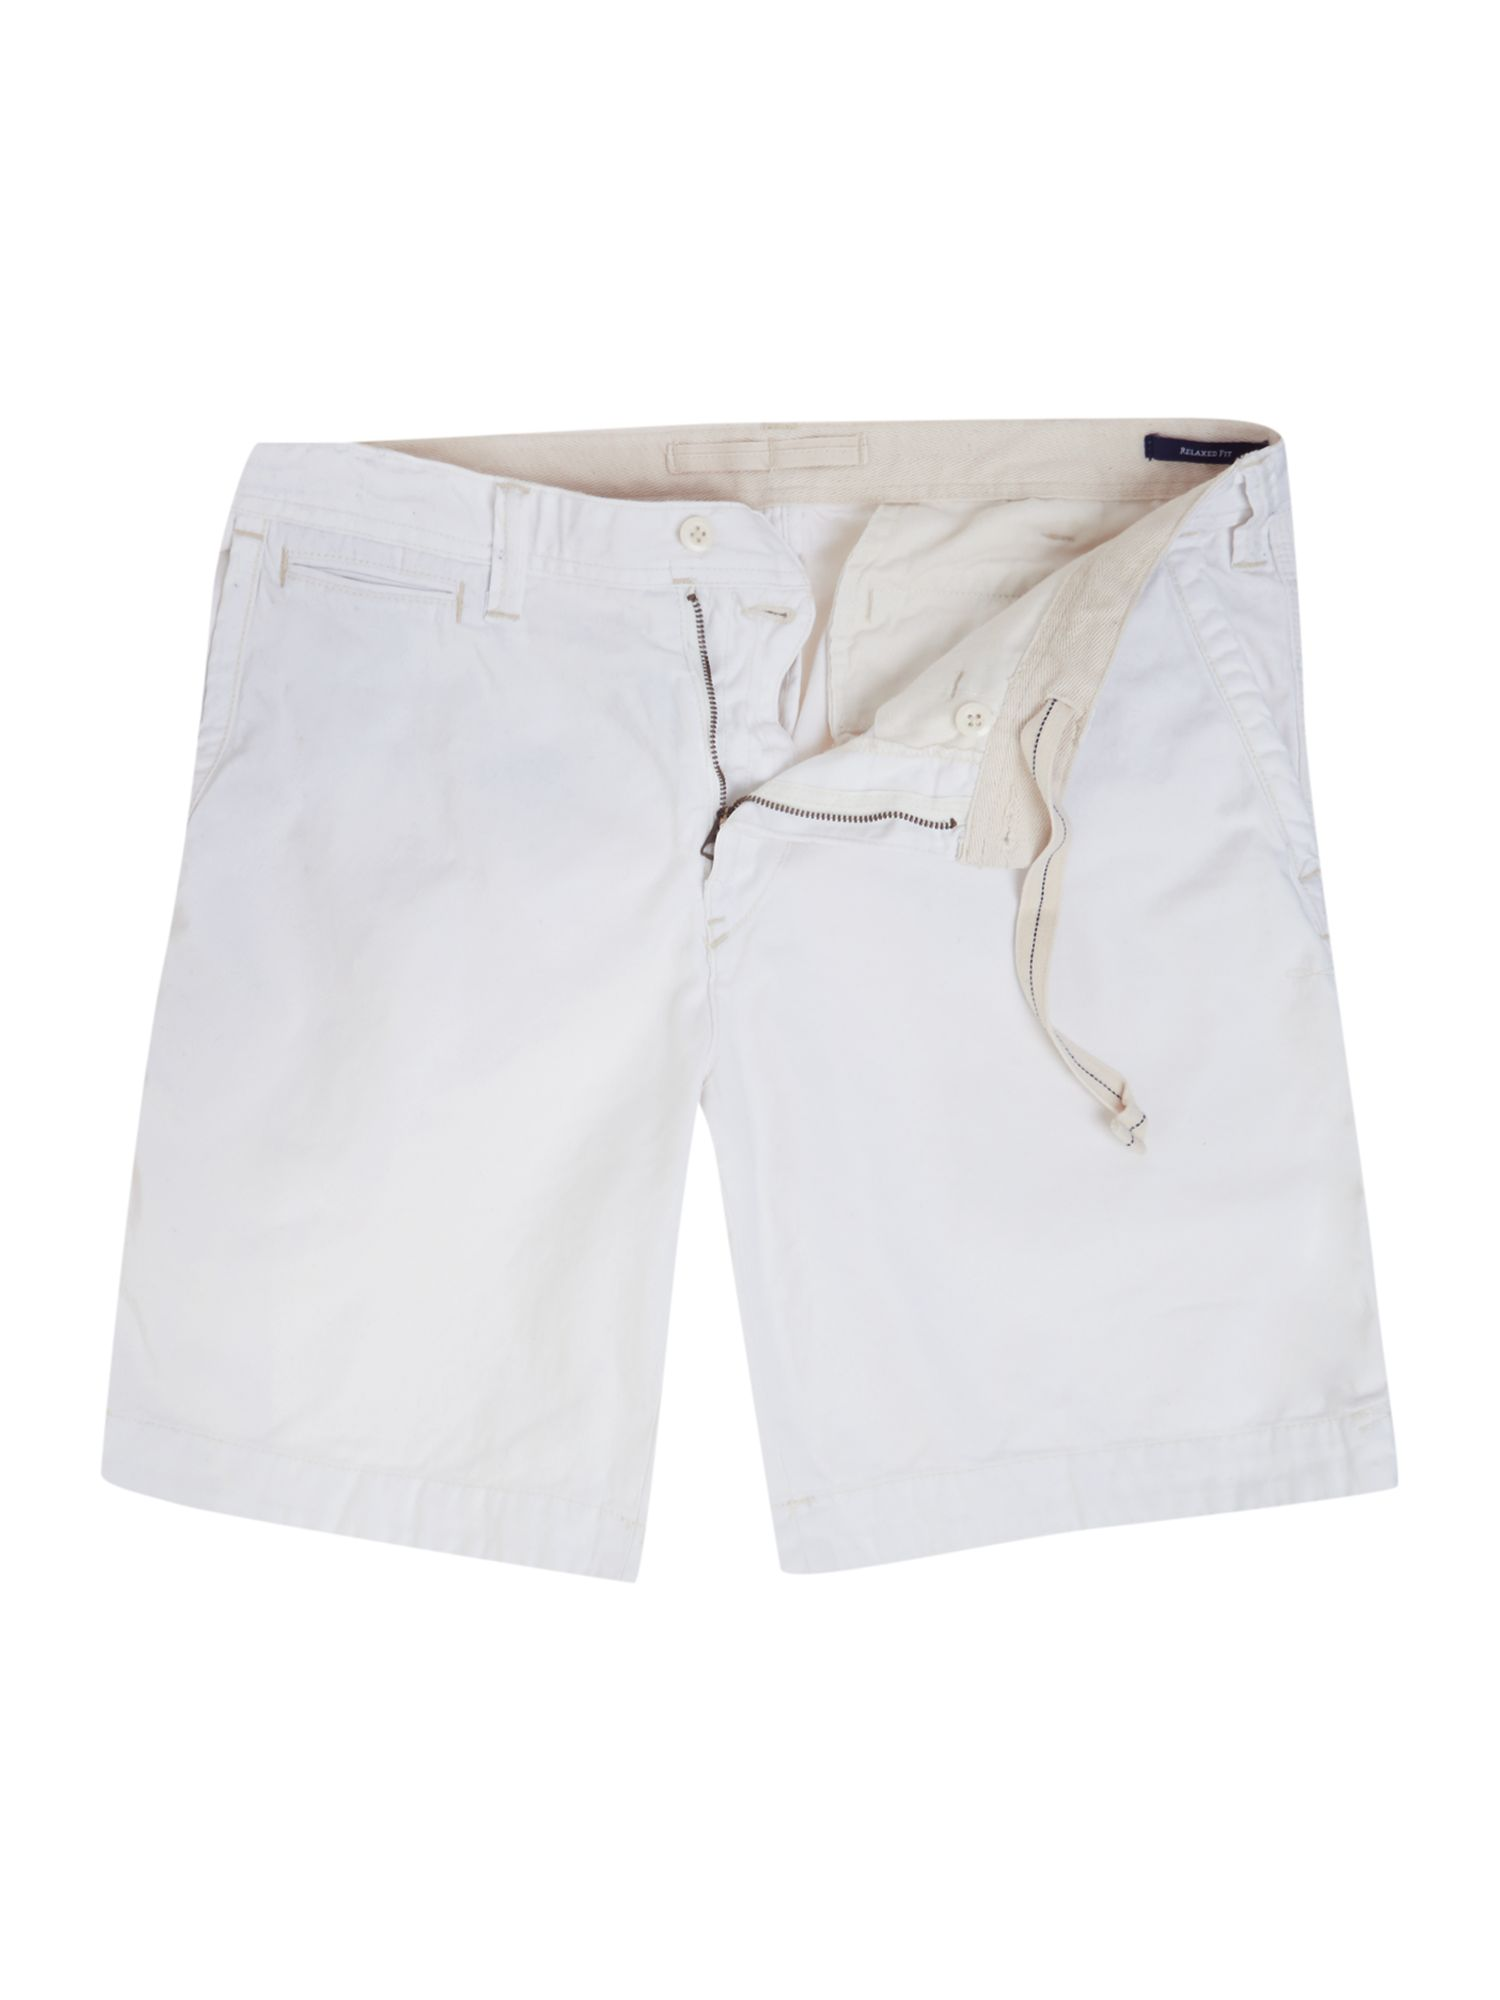 Rugged bleeker relaxed fit chino short